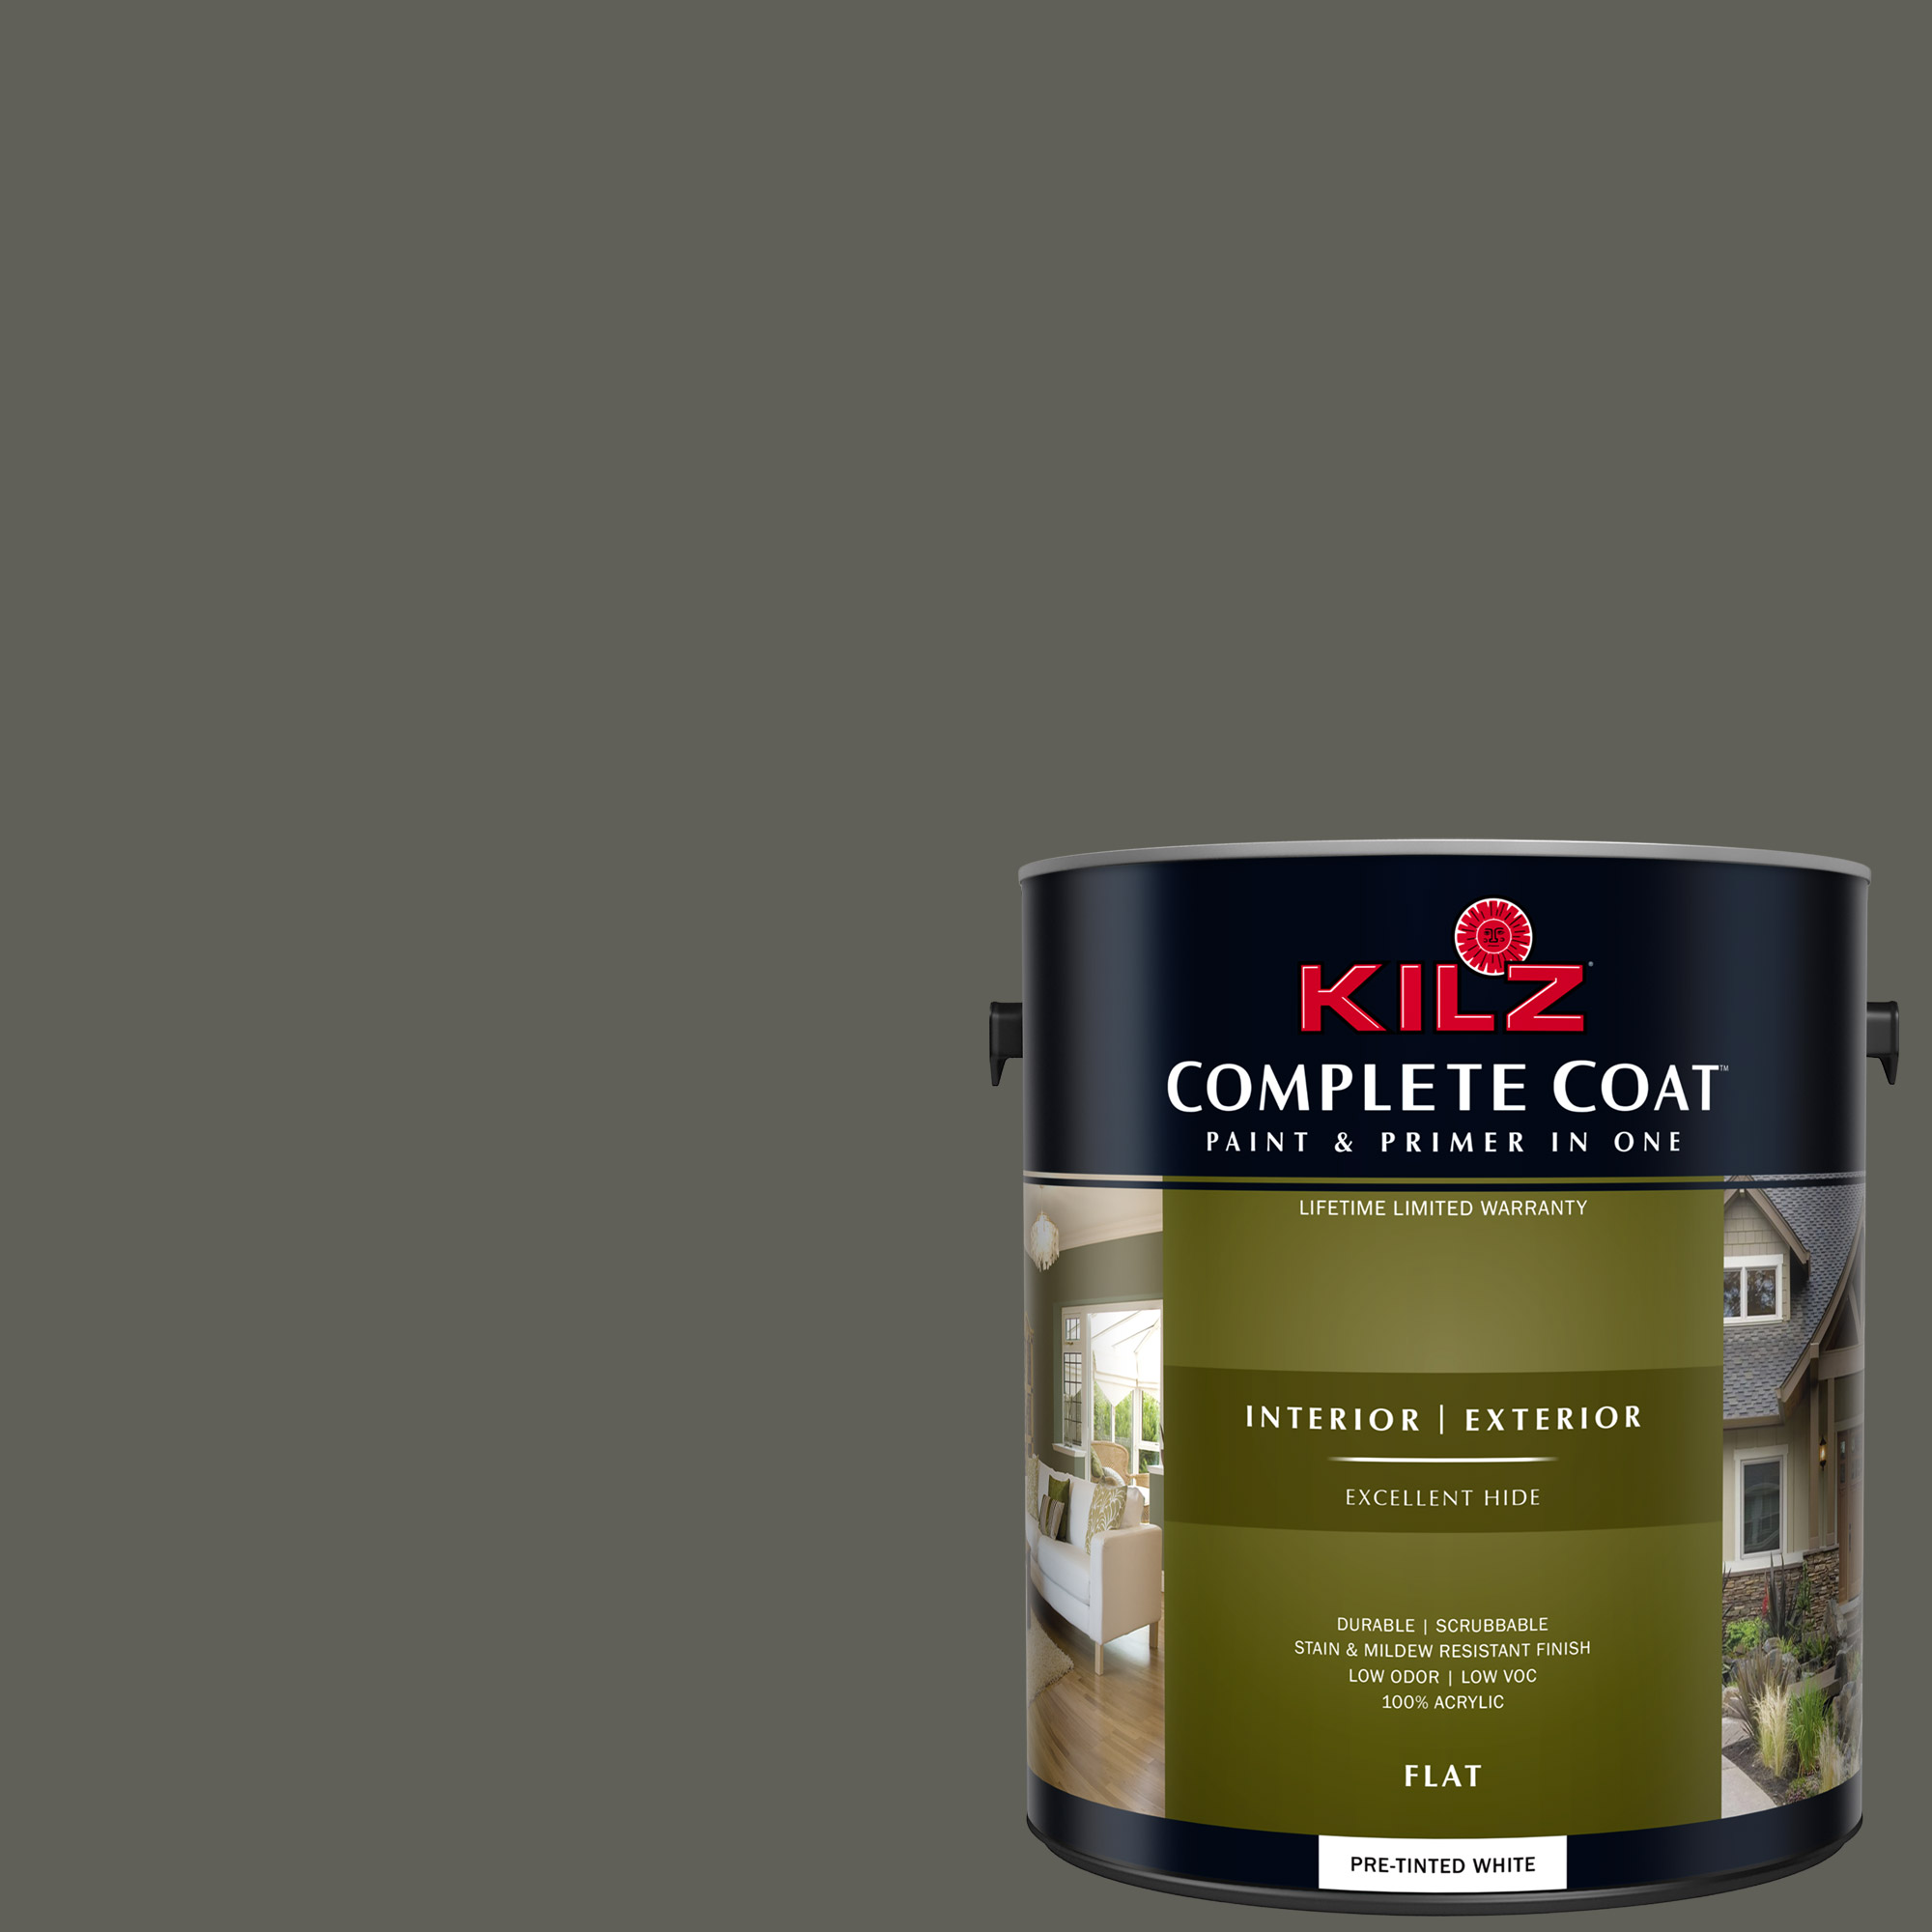 KILZ COMPLETE COAT Interior/Exterior Paint & Primer in One #RM190 Dark Umber